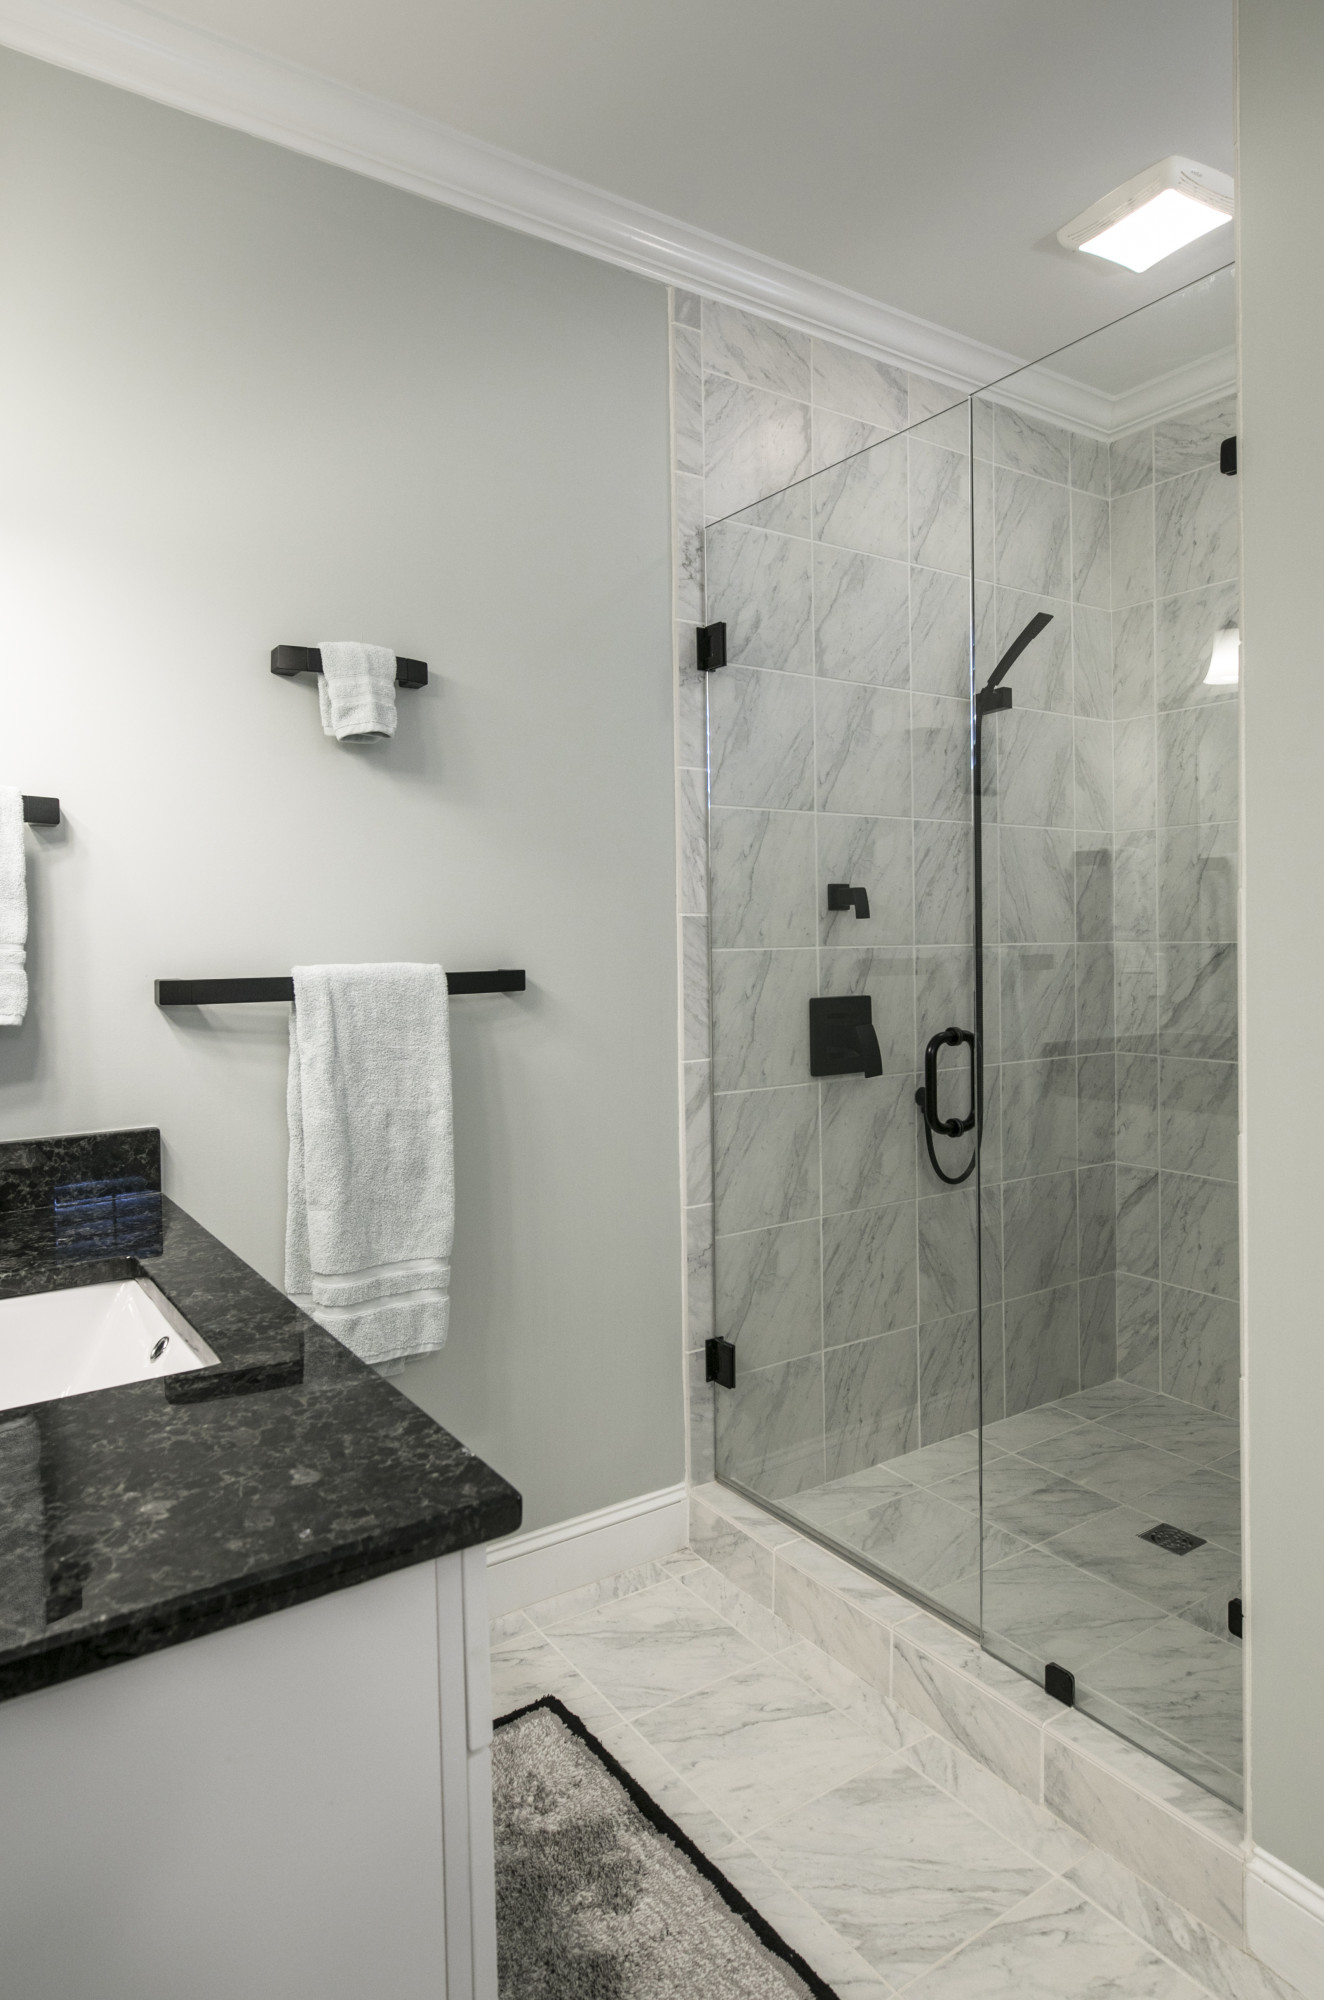 Upgrading your bathroom to a walk in shower room for ease of use for disabled or elderly people